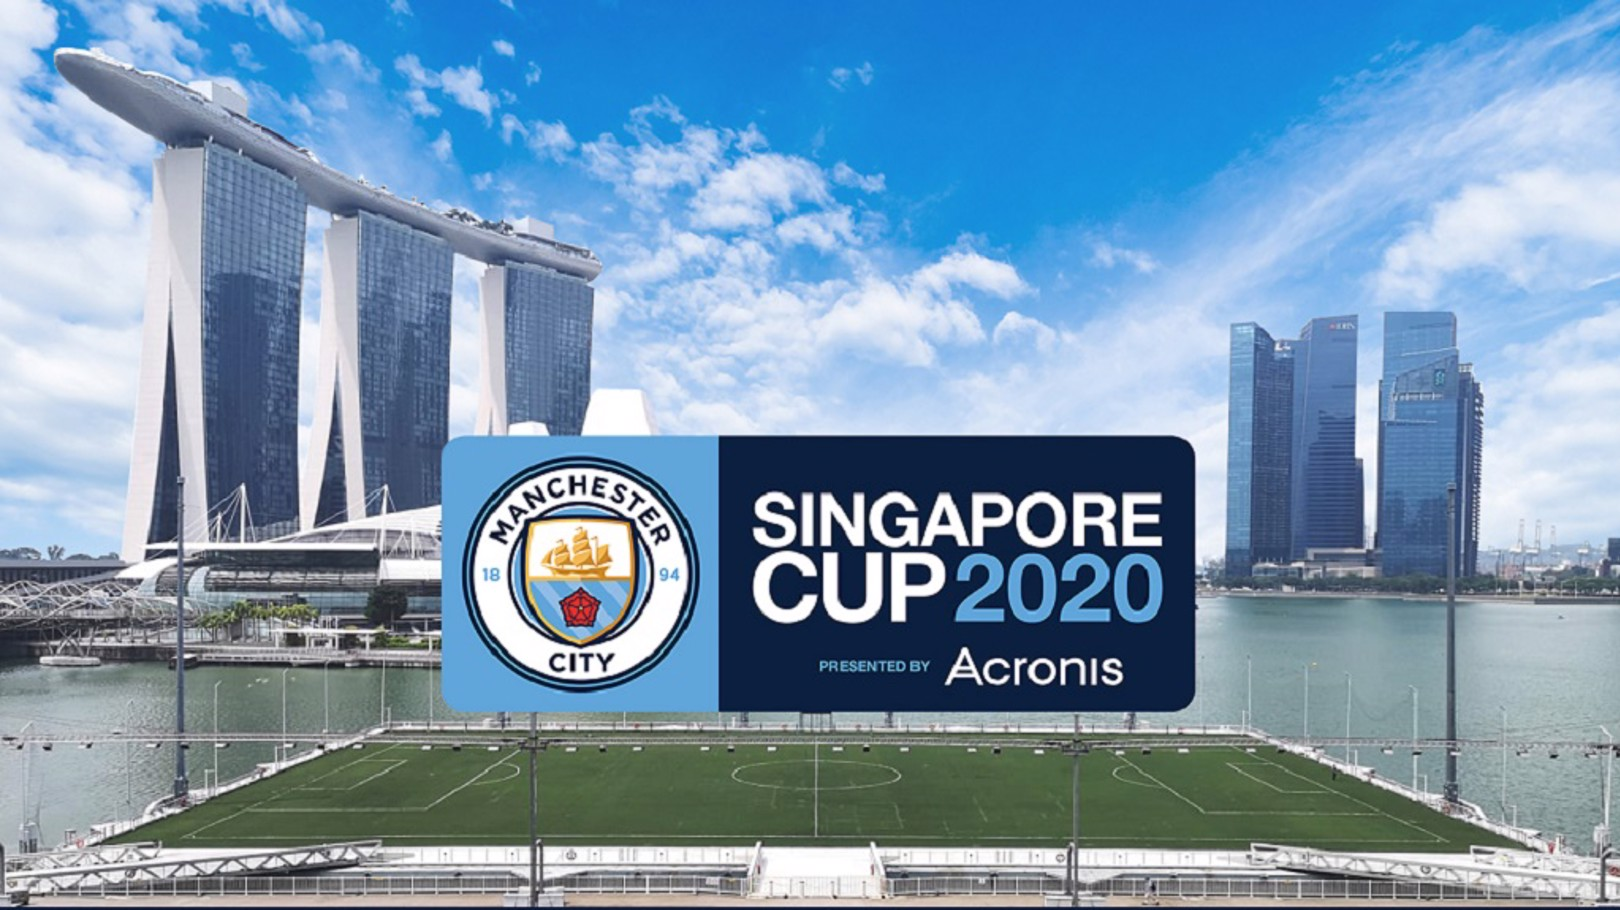 Club to stage Manchester City Singapore Cup 2020